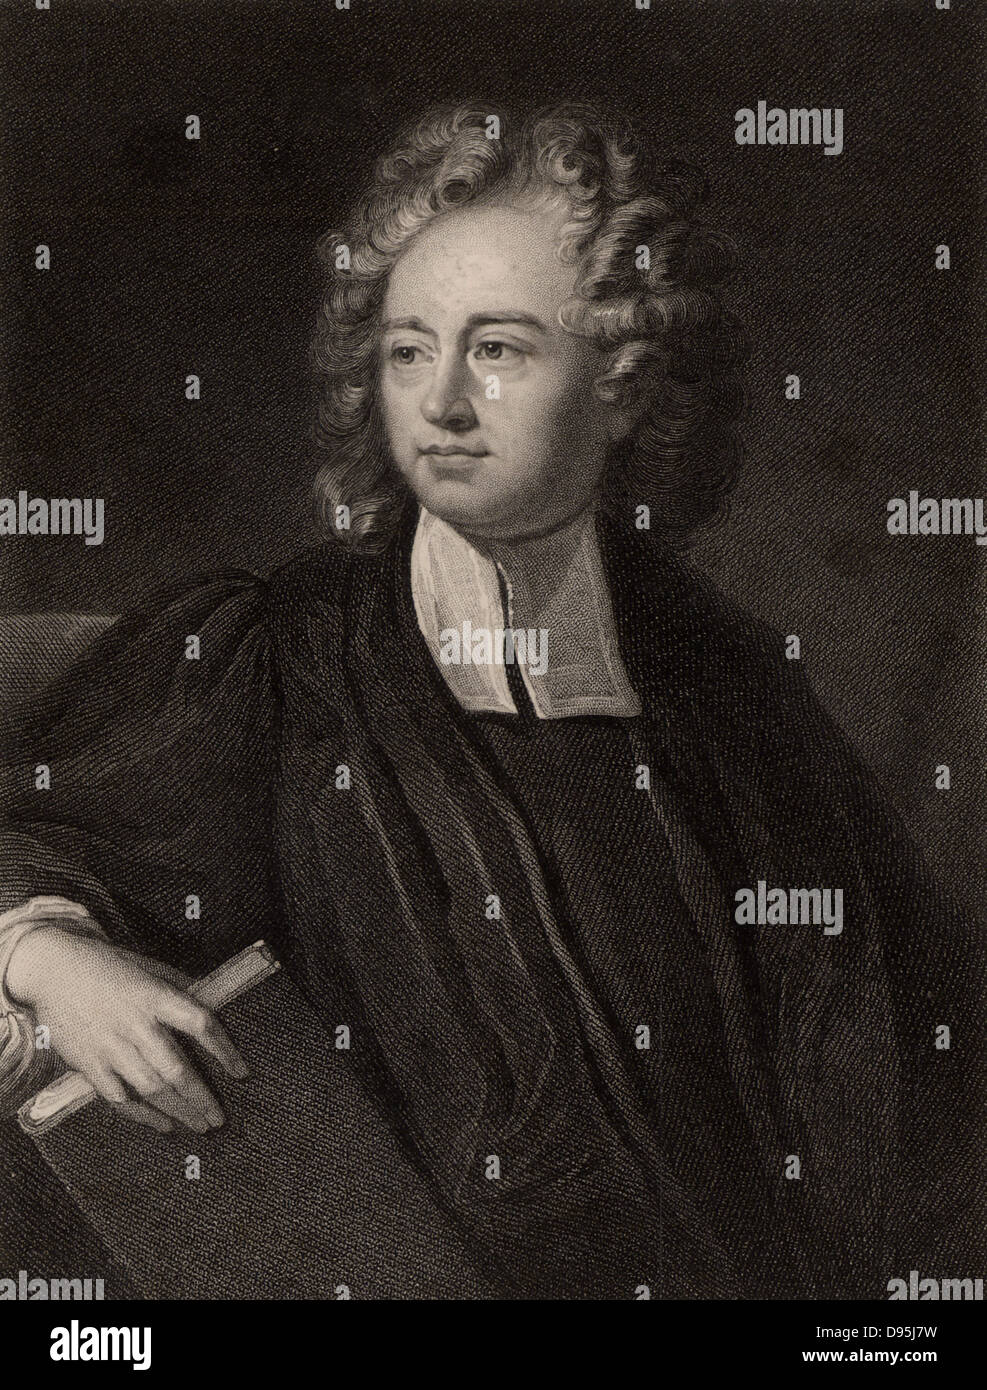 Richard Bentley (1662-142) English classical scholar and philologist. Master of Trinity College, Cambridge. Lampooned - Stock Image